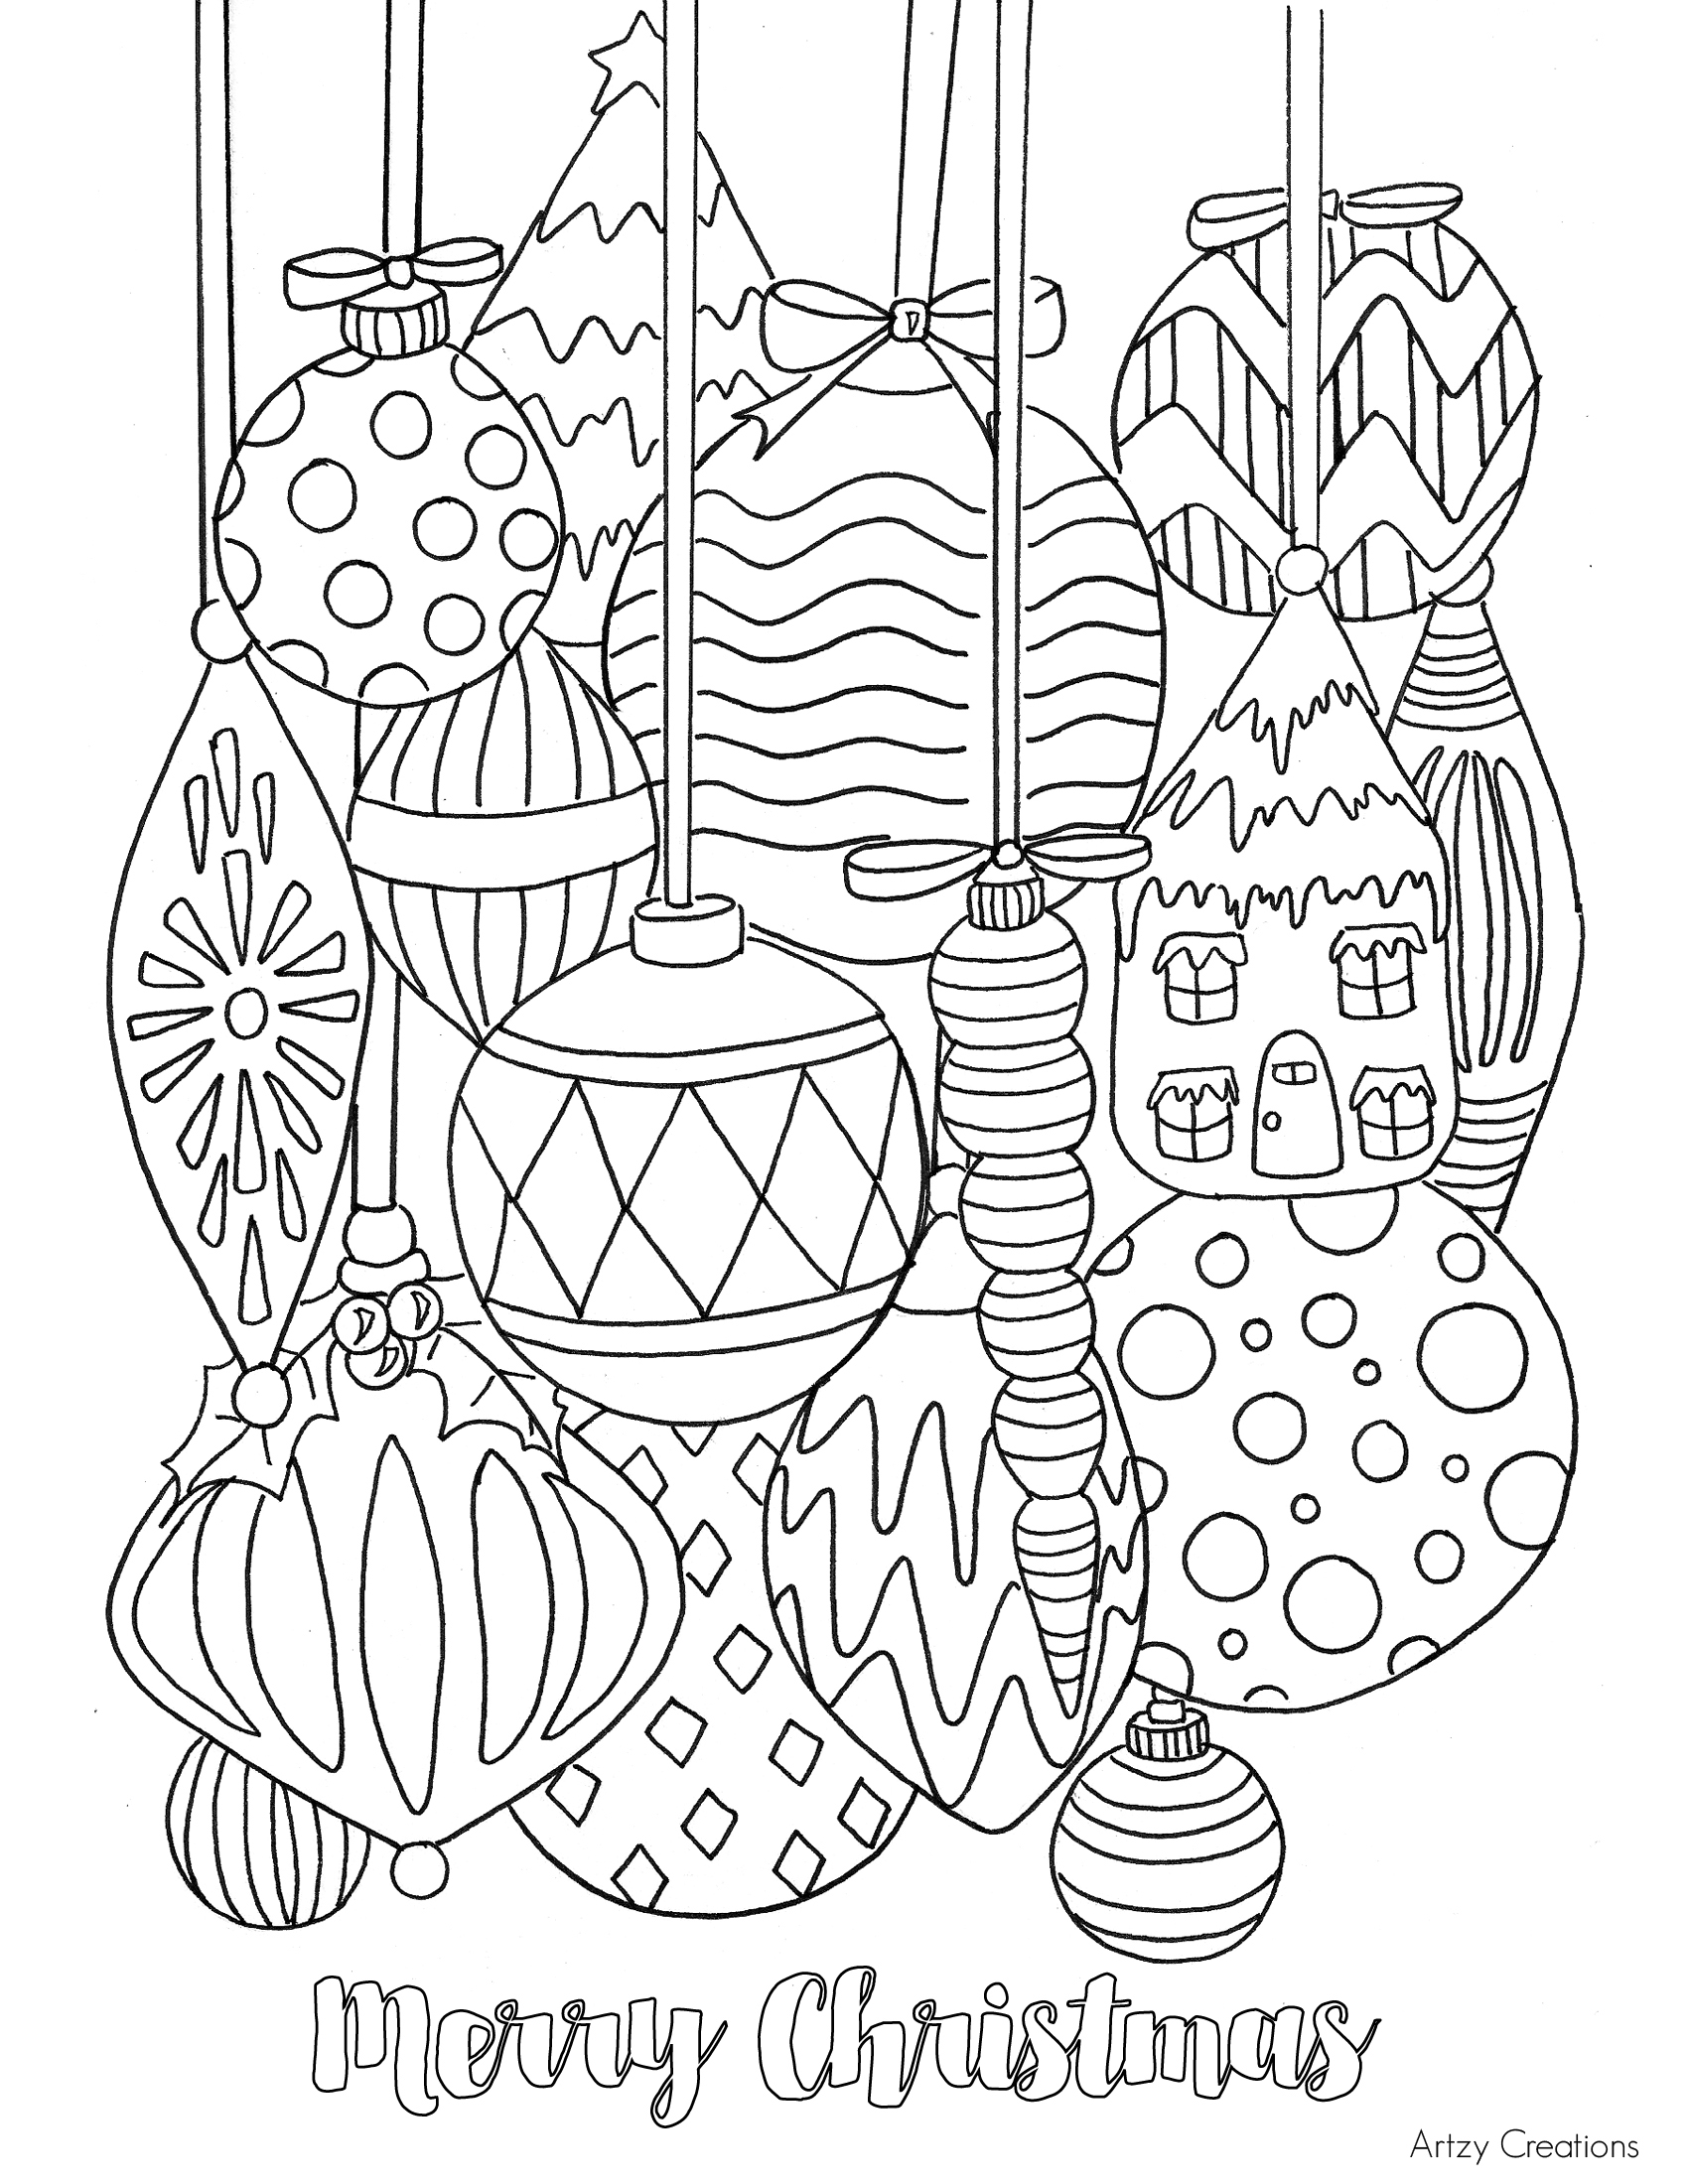 Xmas Ornaments Coloring Pages With Free Christmas Ornament Page TGIF This Grandma Is Fun